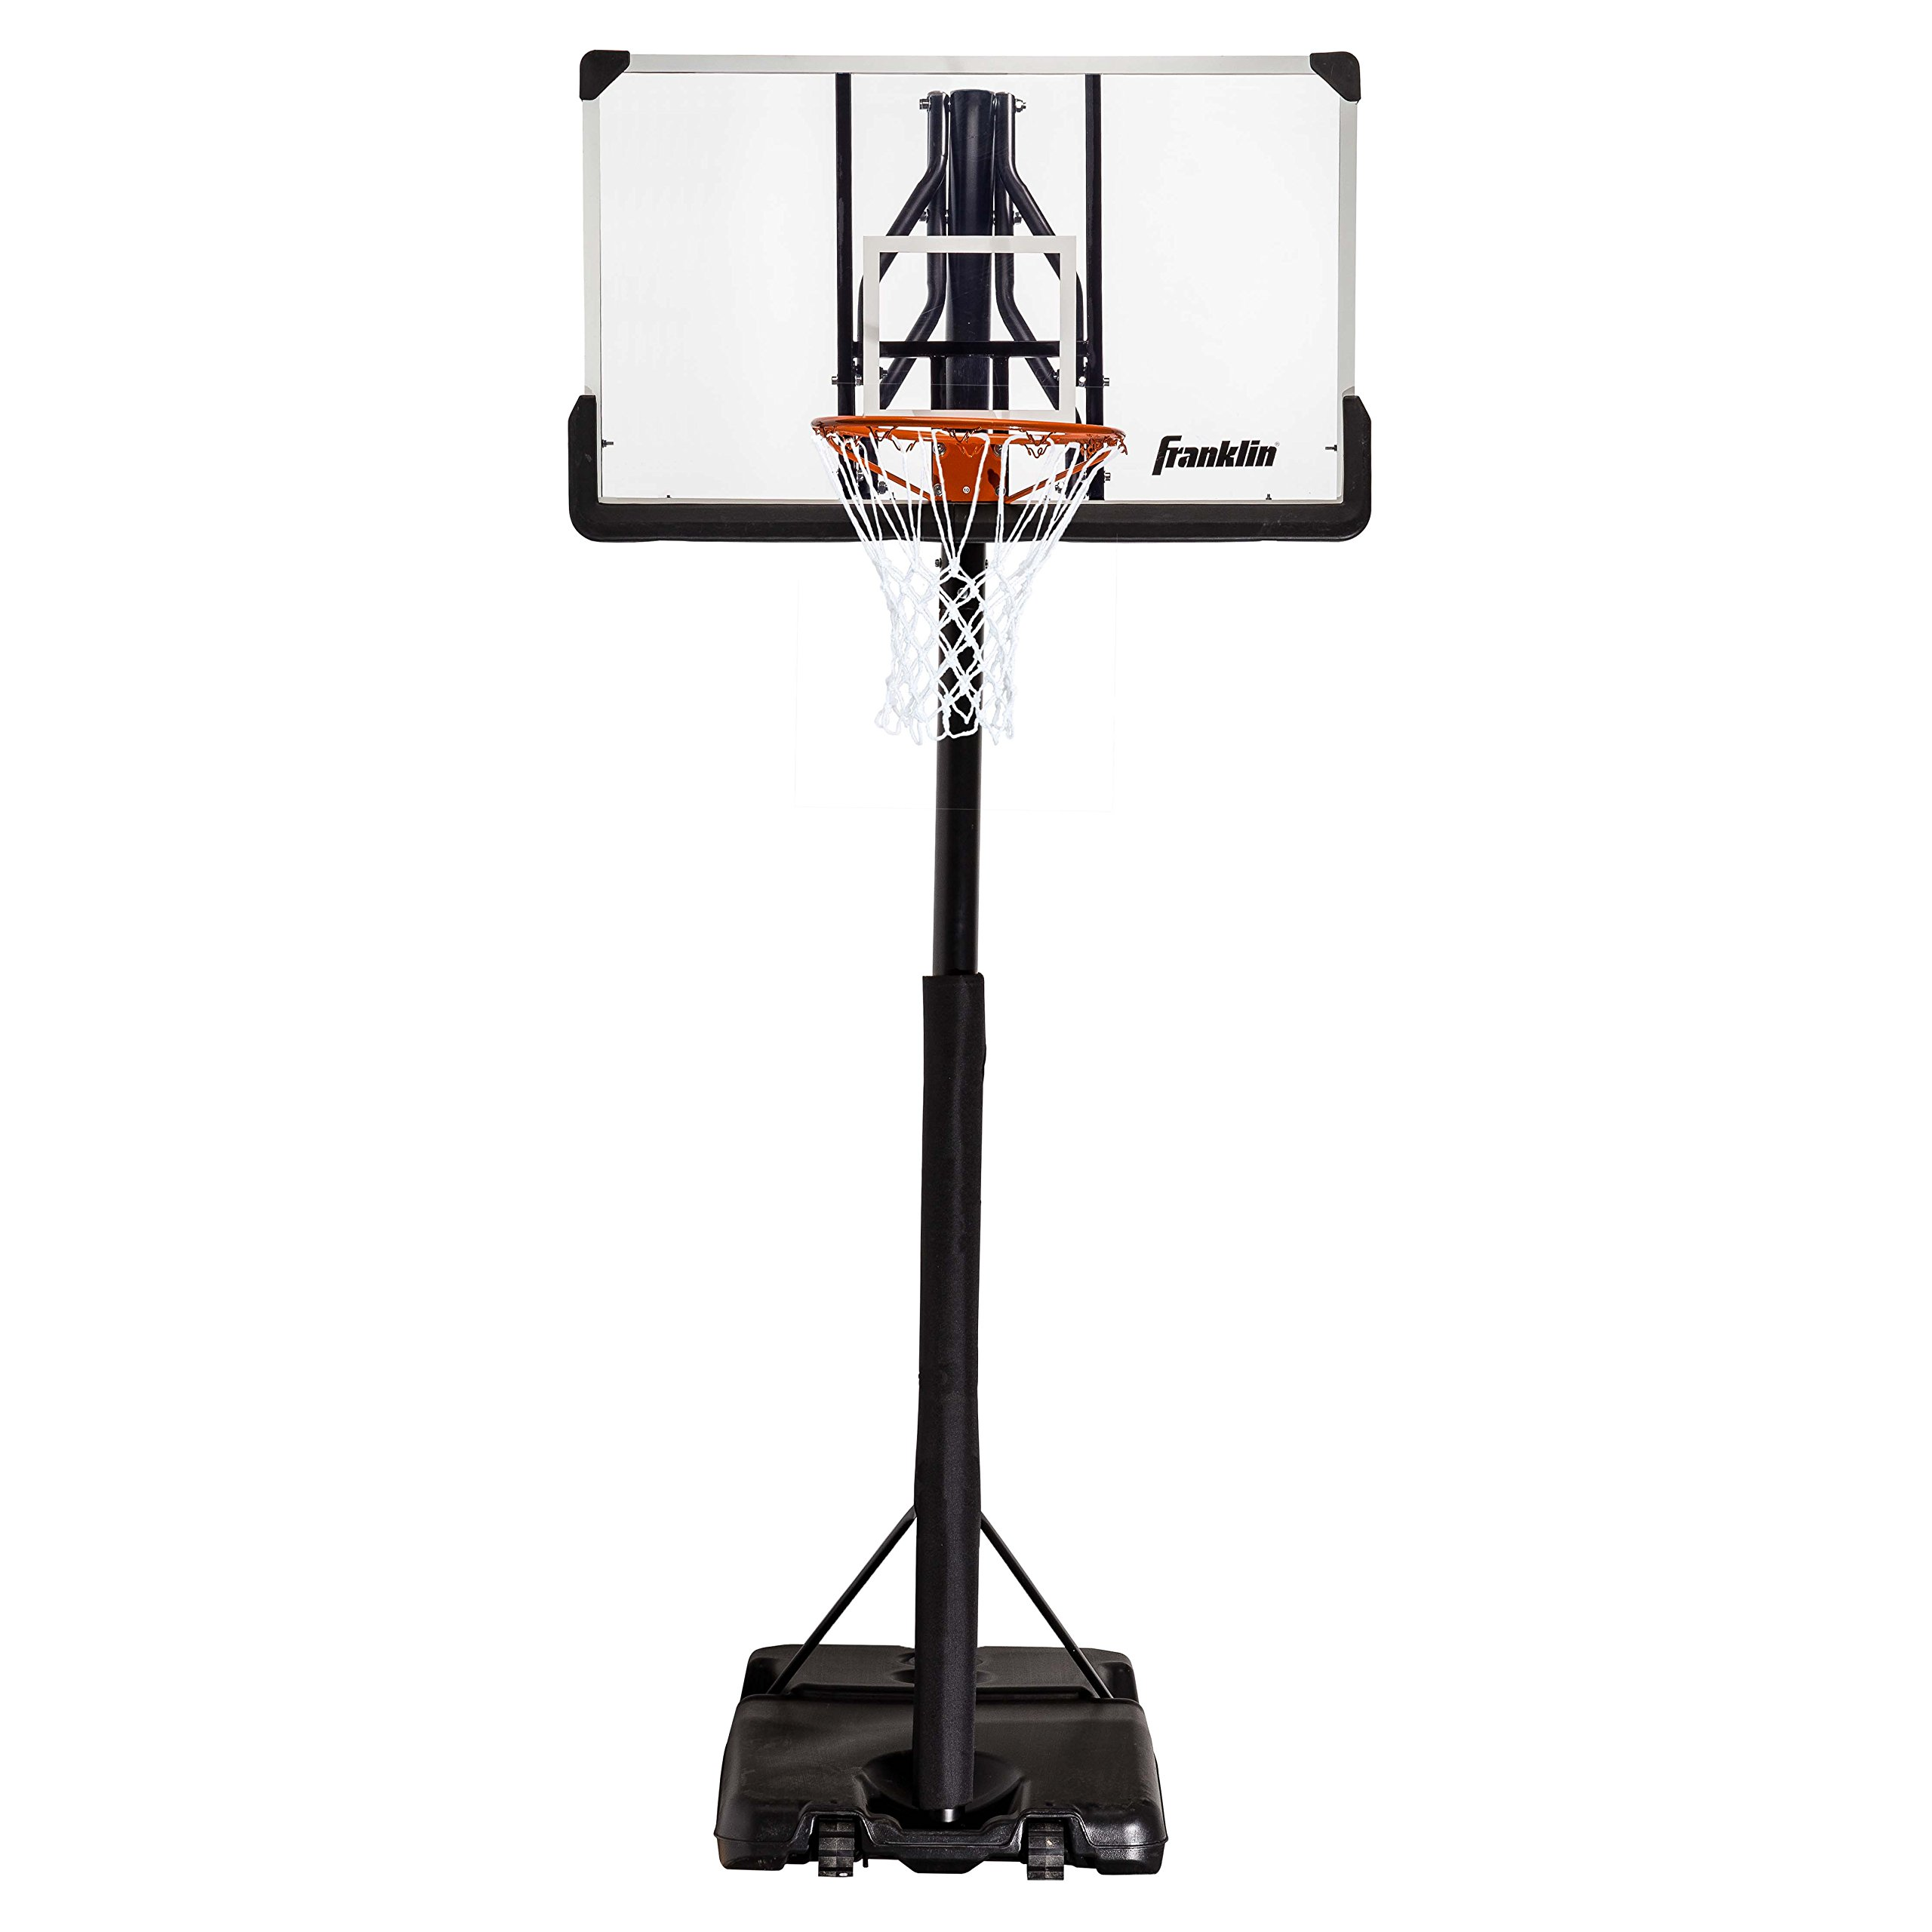 Franklin Sports Portable Basketball Hoop – Authentic Street Basketball Hoop for Adults and Kids – Adjustable Basketball Hoop with Rolling Mechanism – Play Basketball in Your Driveway